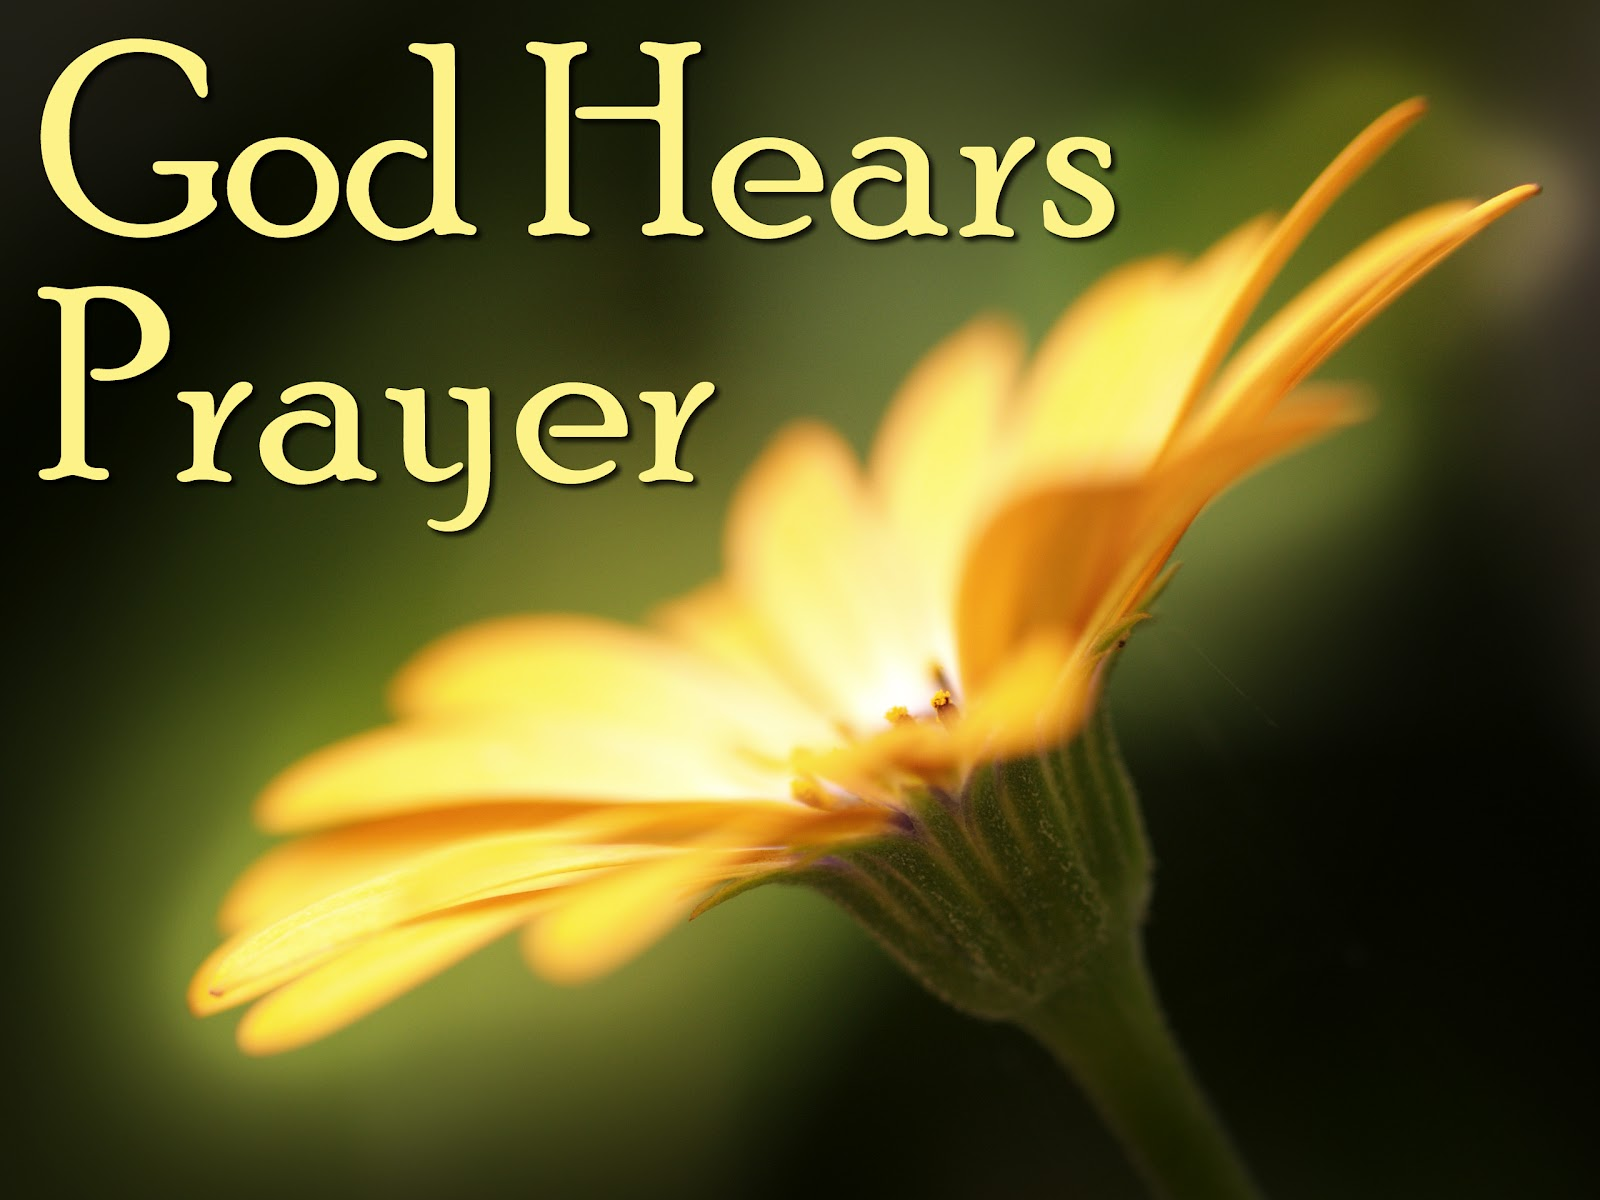 21 days of prayer image